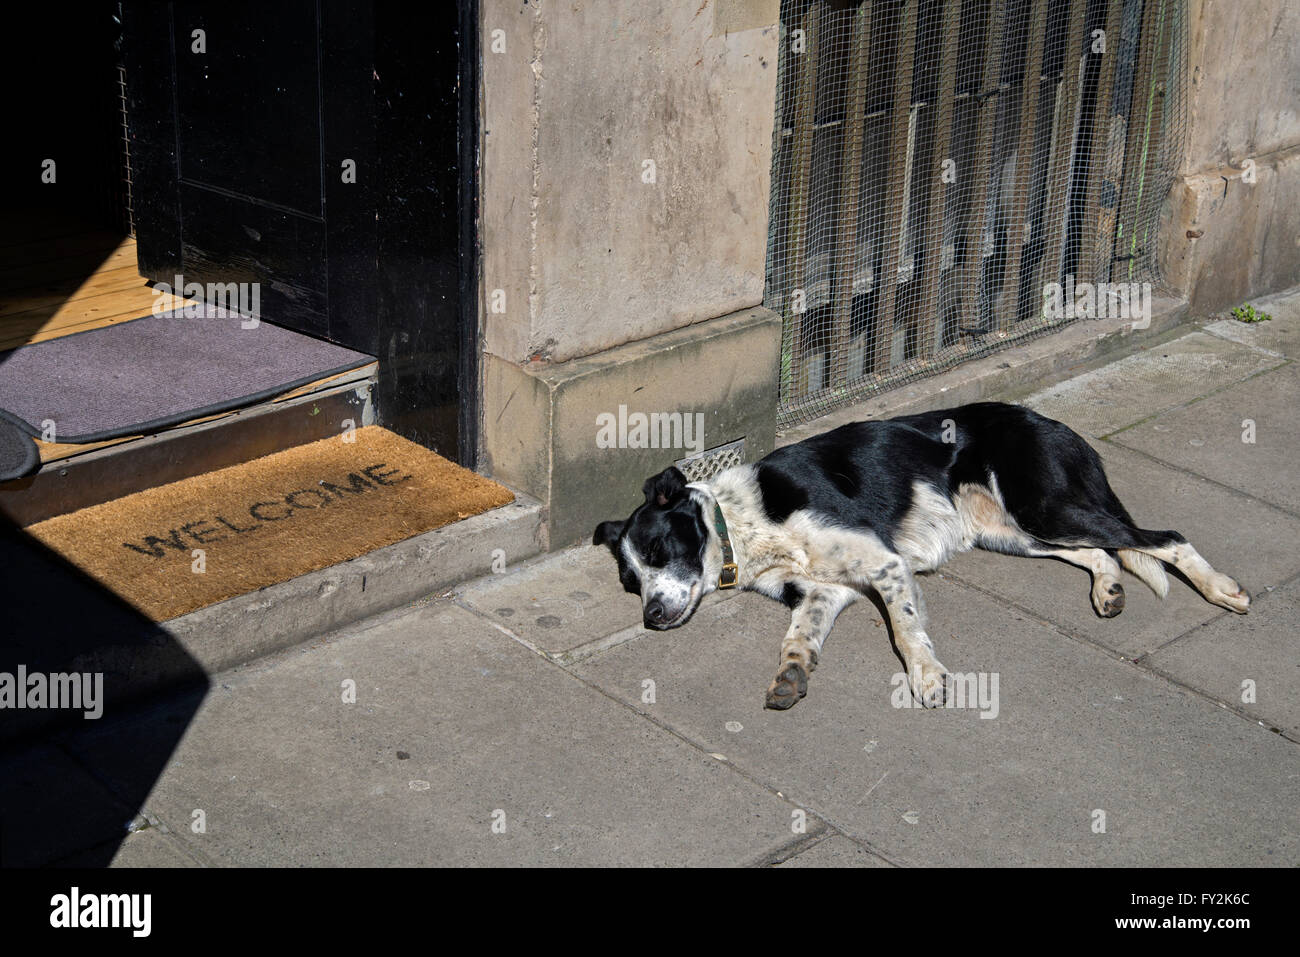 Black and white mongrel dog sleeping in the sun. - Stock Image